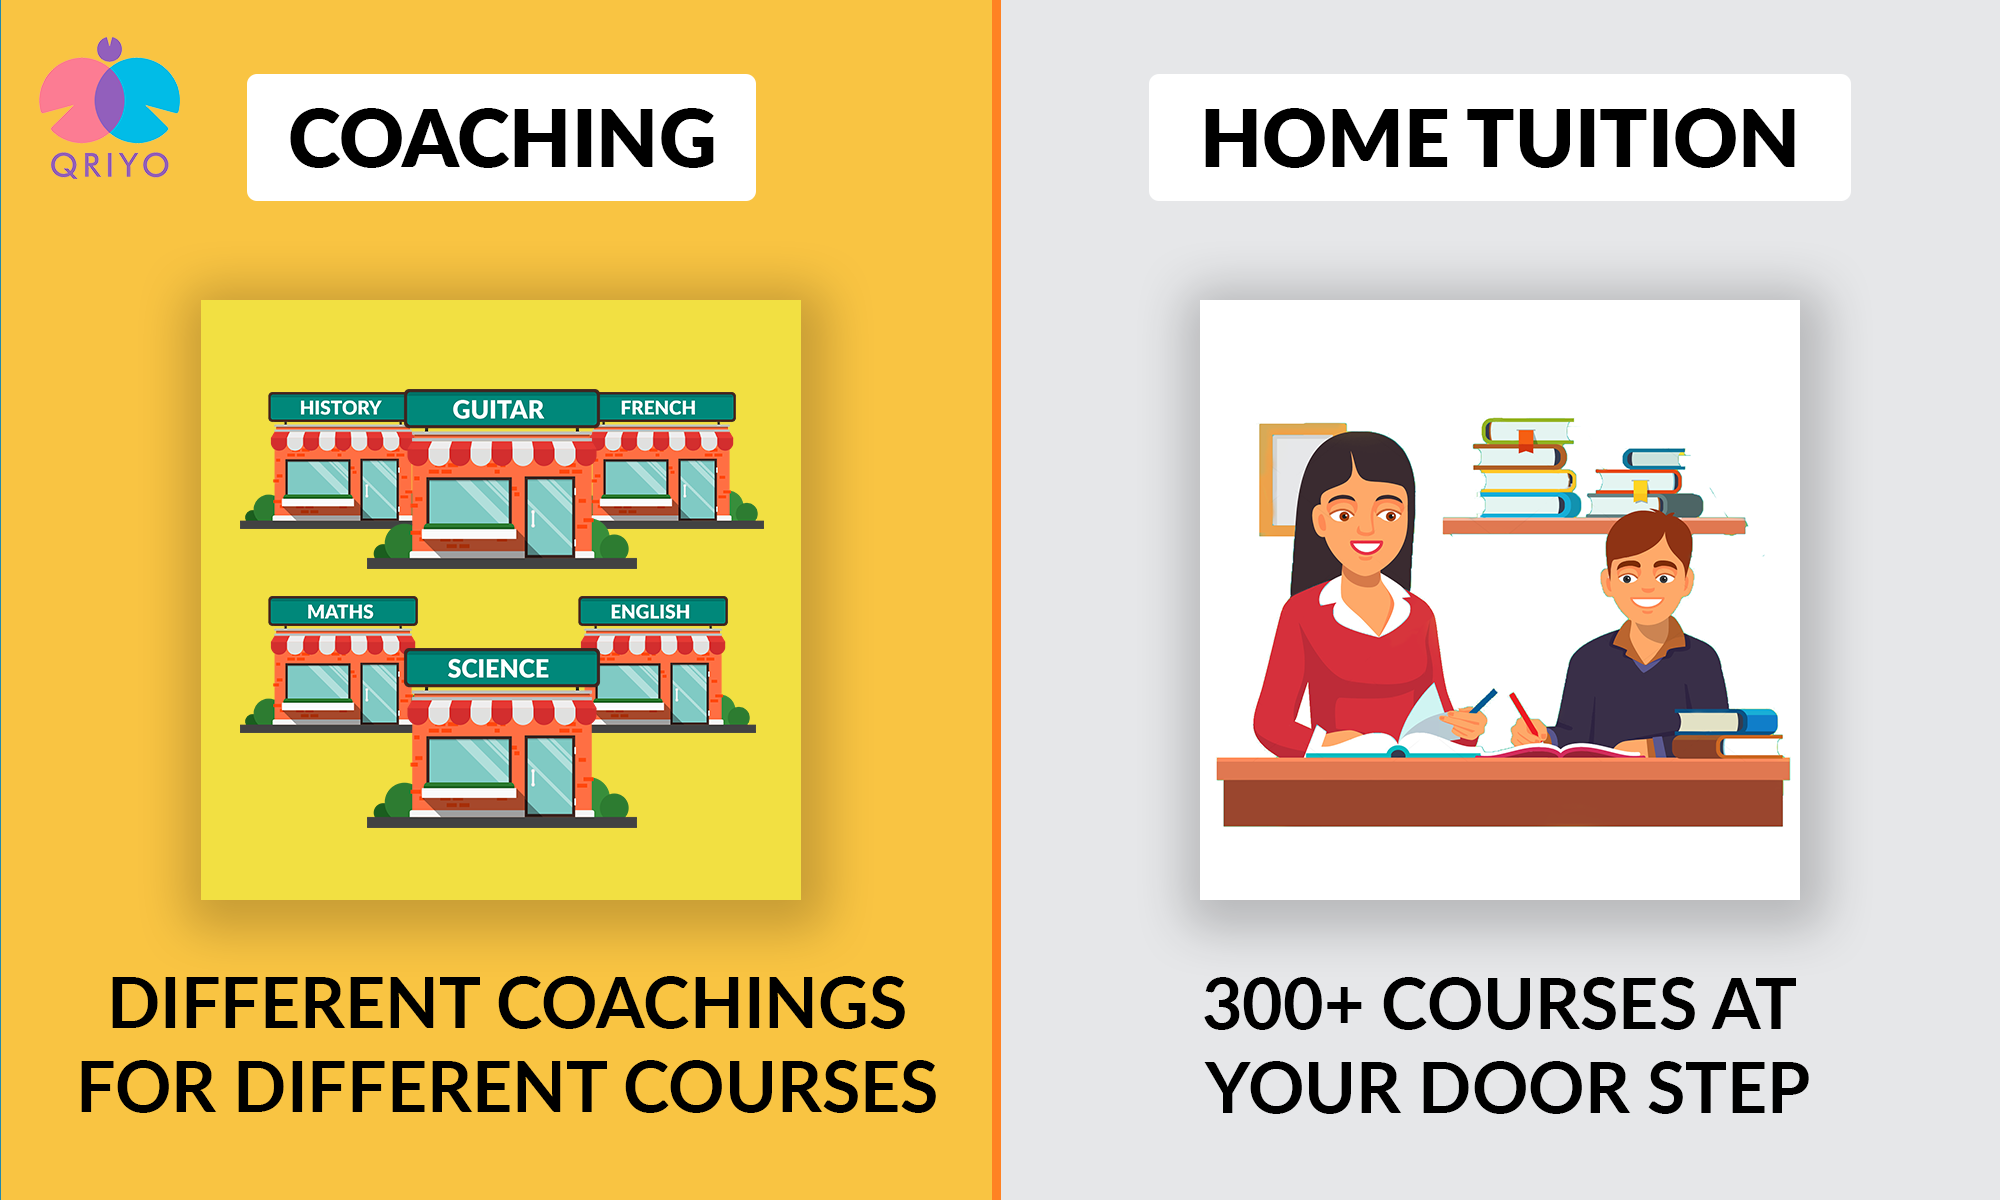 Qriyo provides all courses at your home.